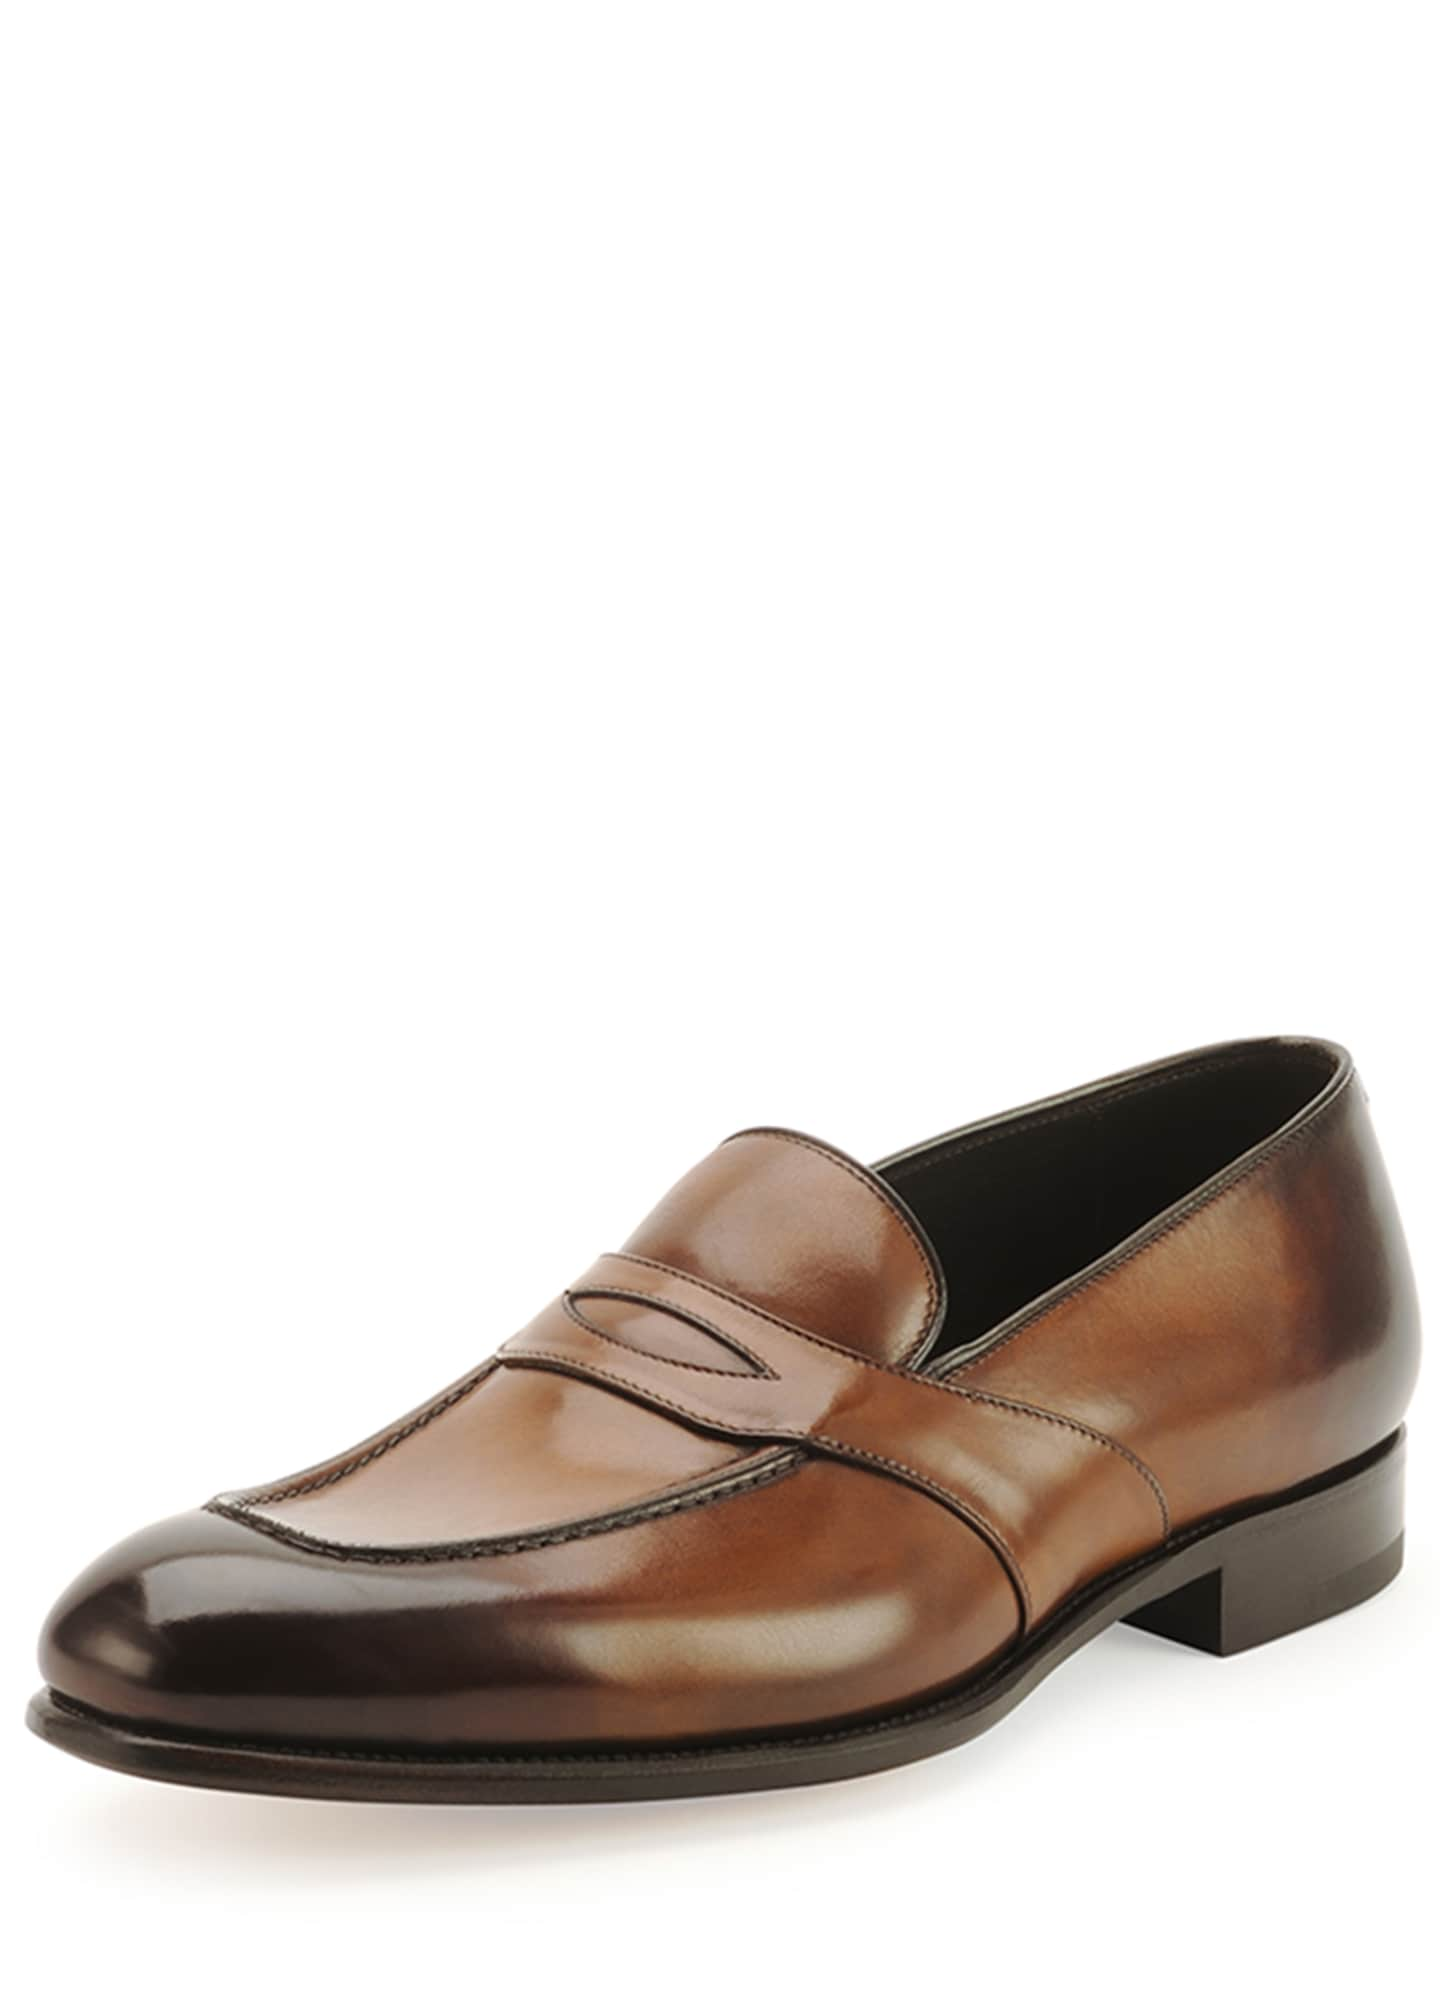 TOM FORD Charles Penny Loafer, Brown